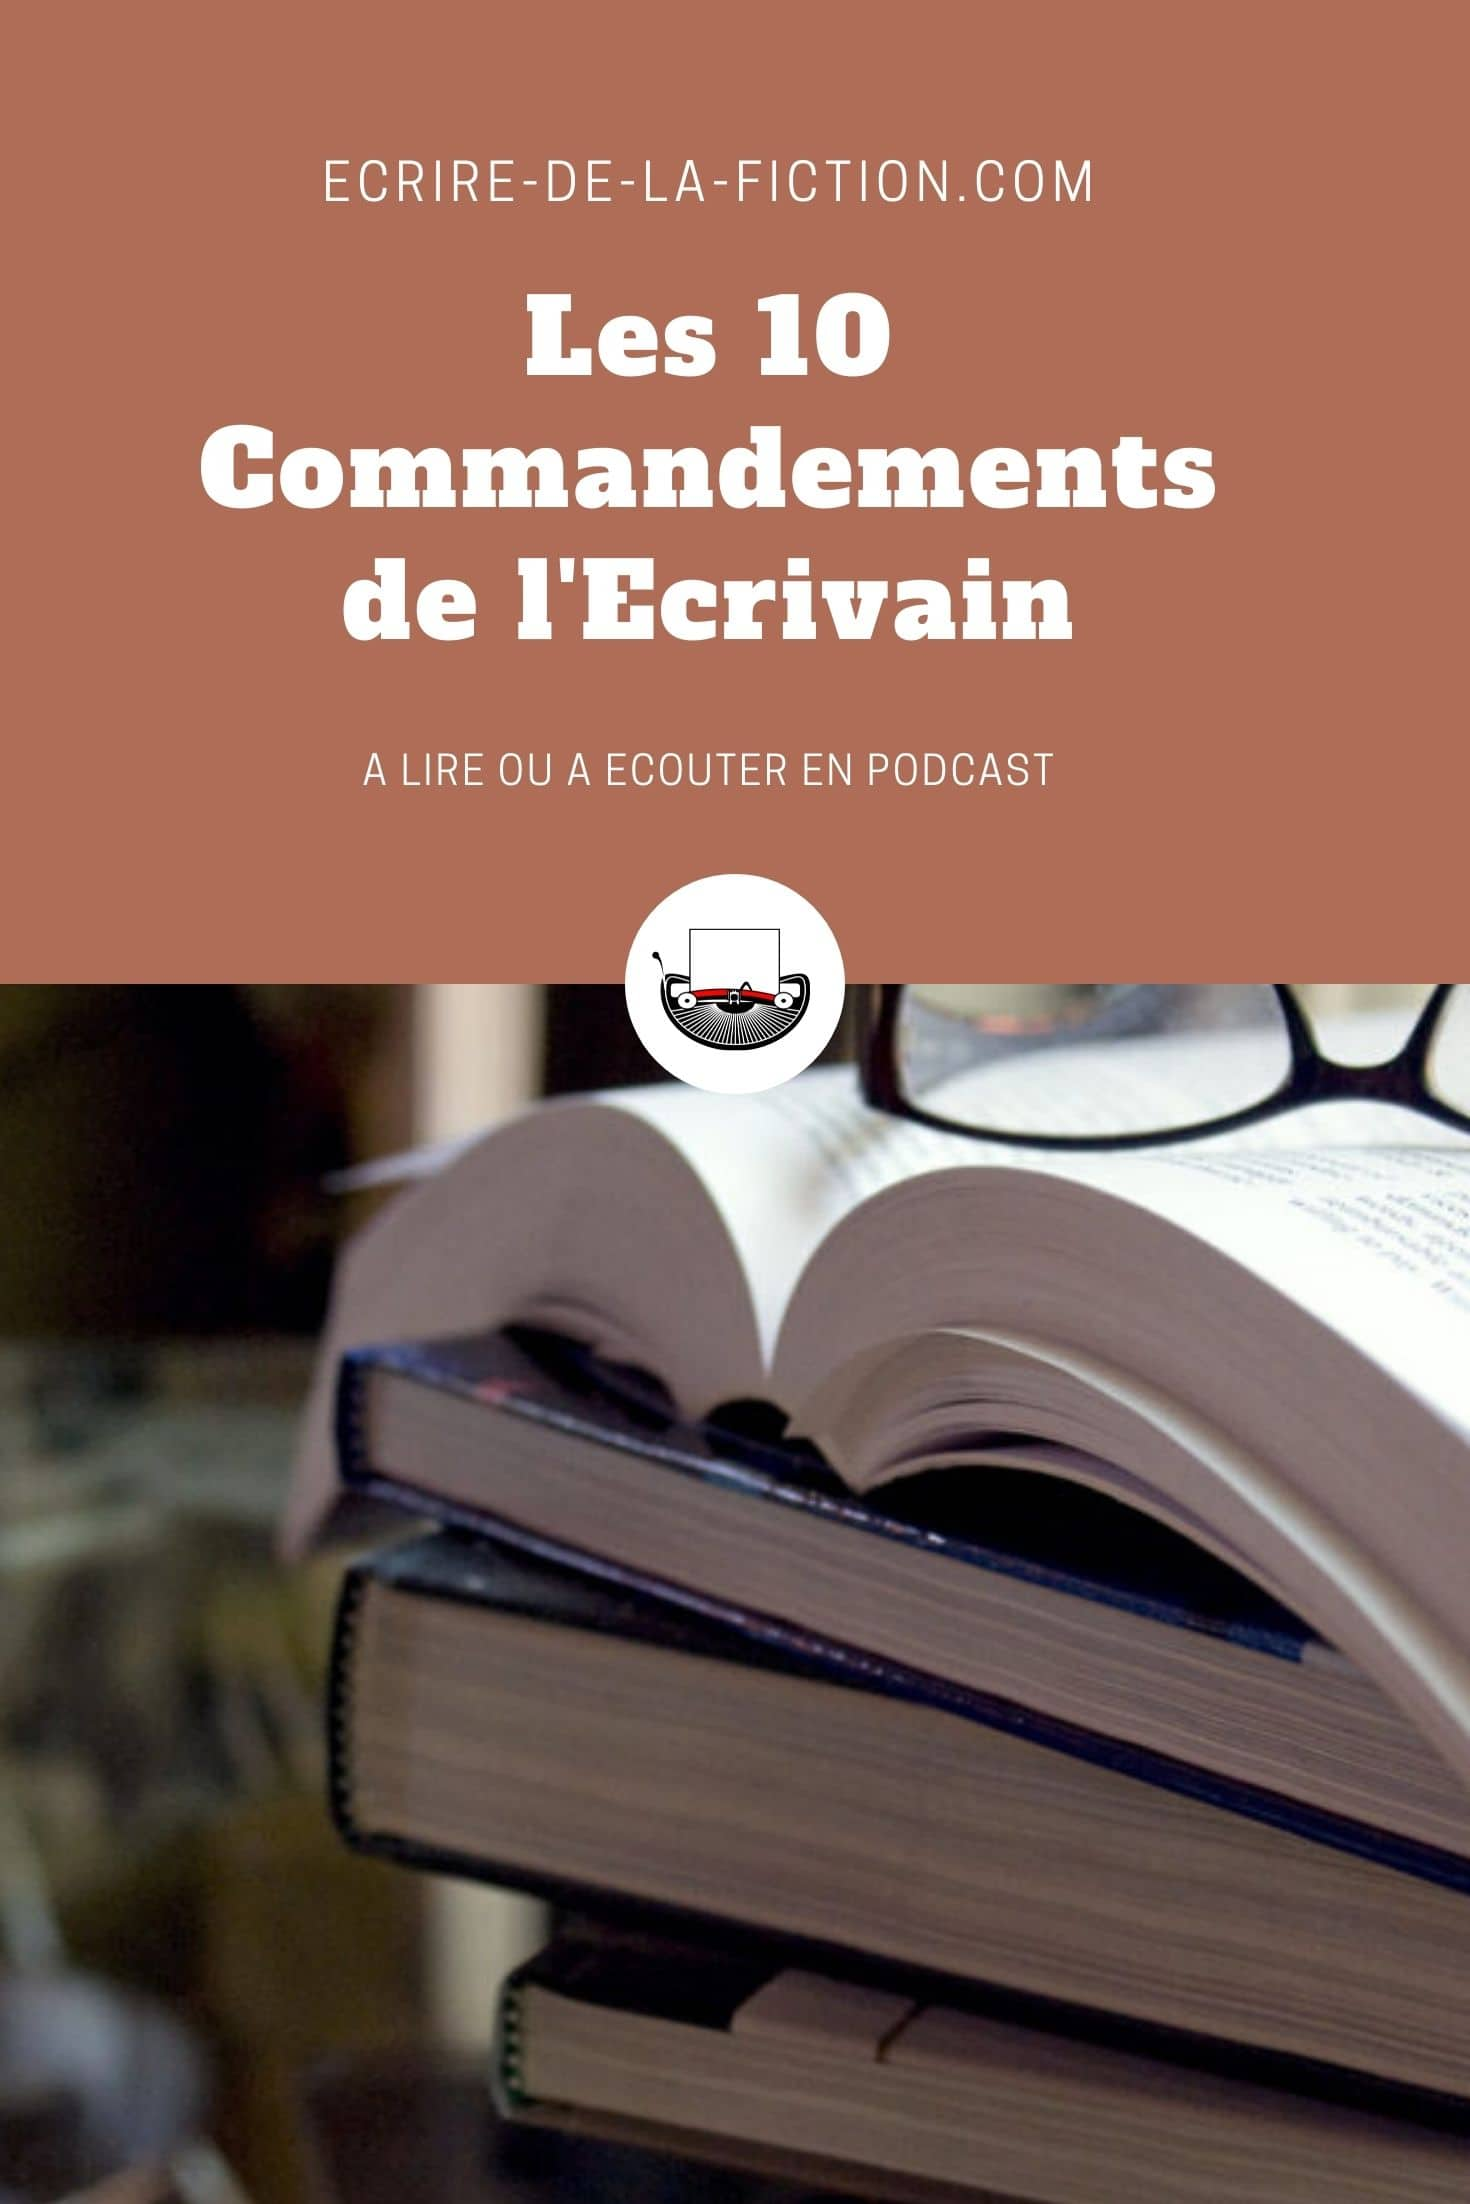 epingle les 10 commandements de l ecrivain